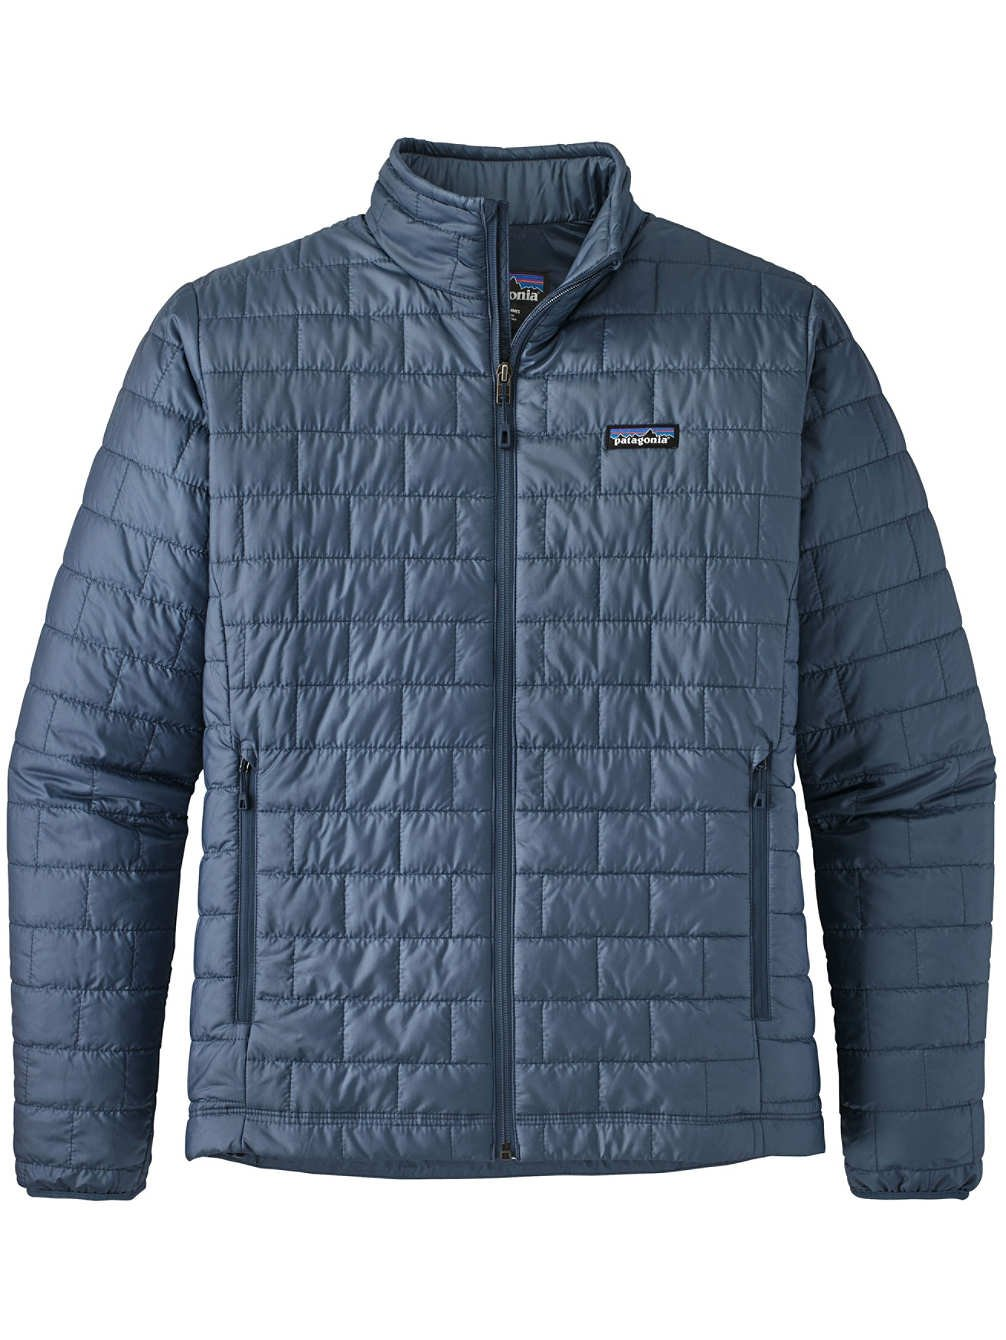 Patagonia Ms Nano Puff Jacket (Dolomite Blue, X-Large) by Patagonia